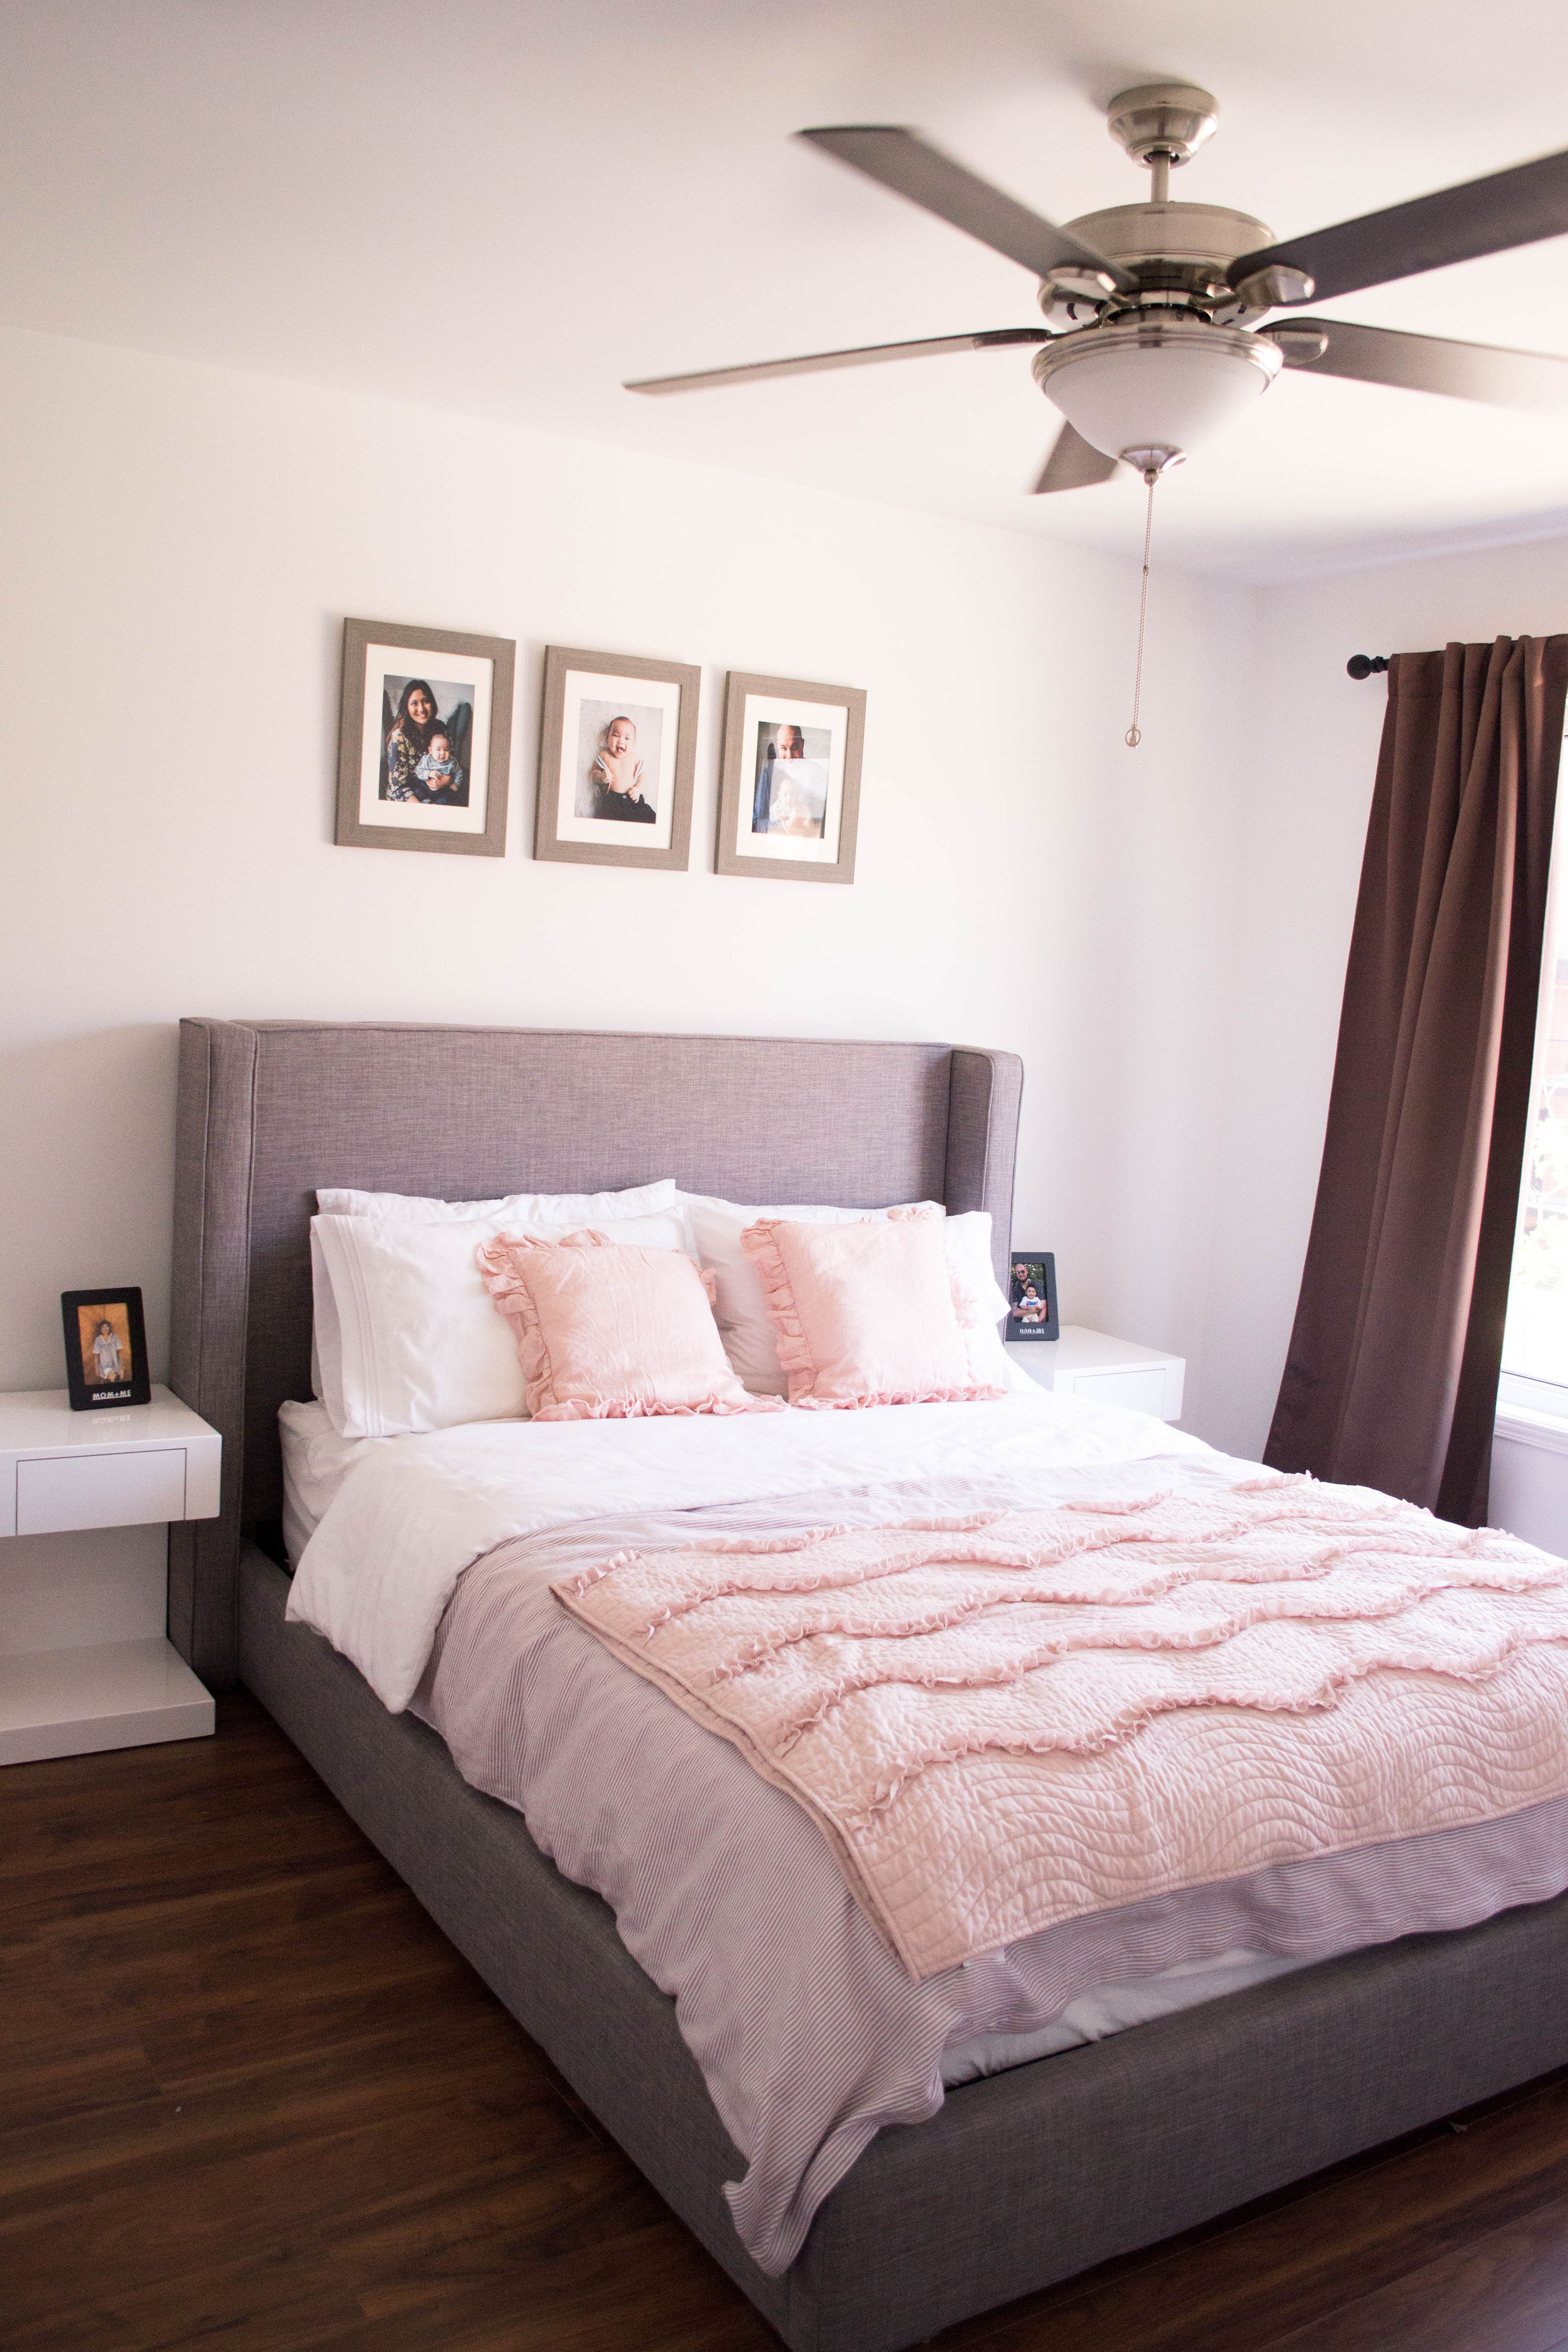 Decorating Our Master Bedroom With A Minimalist Approach Keeping Things